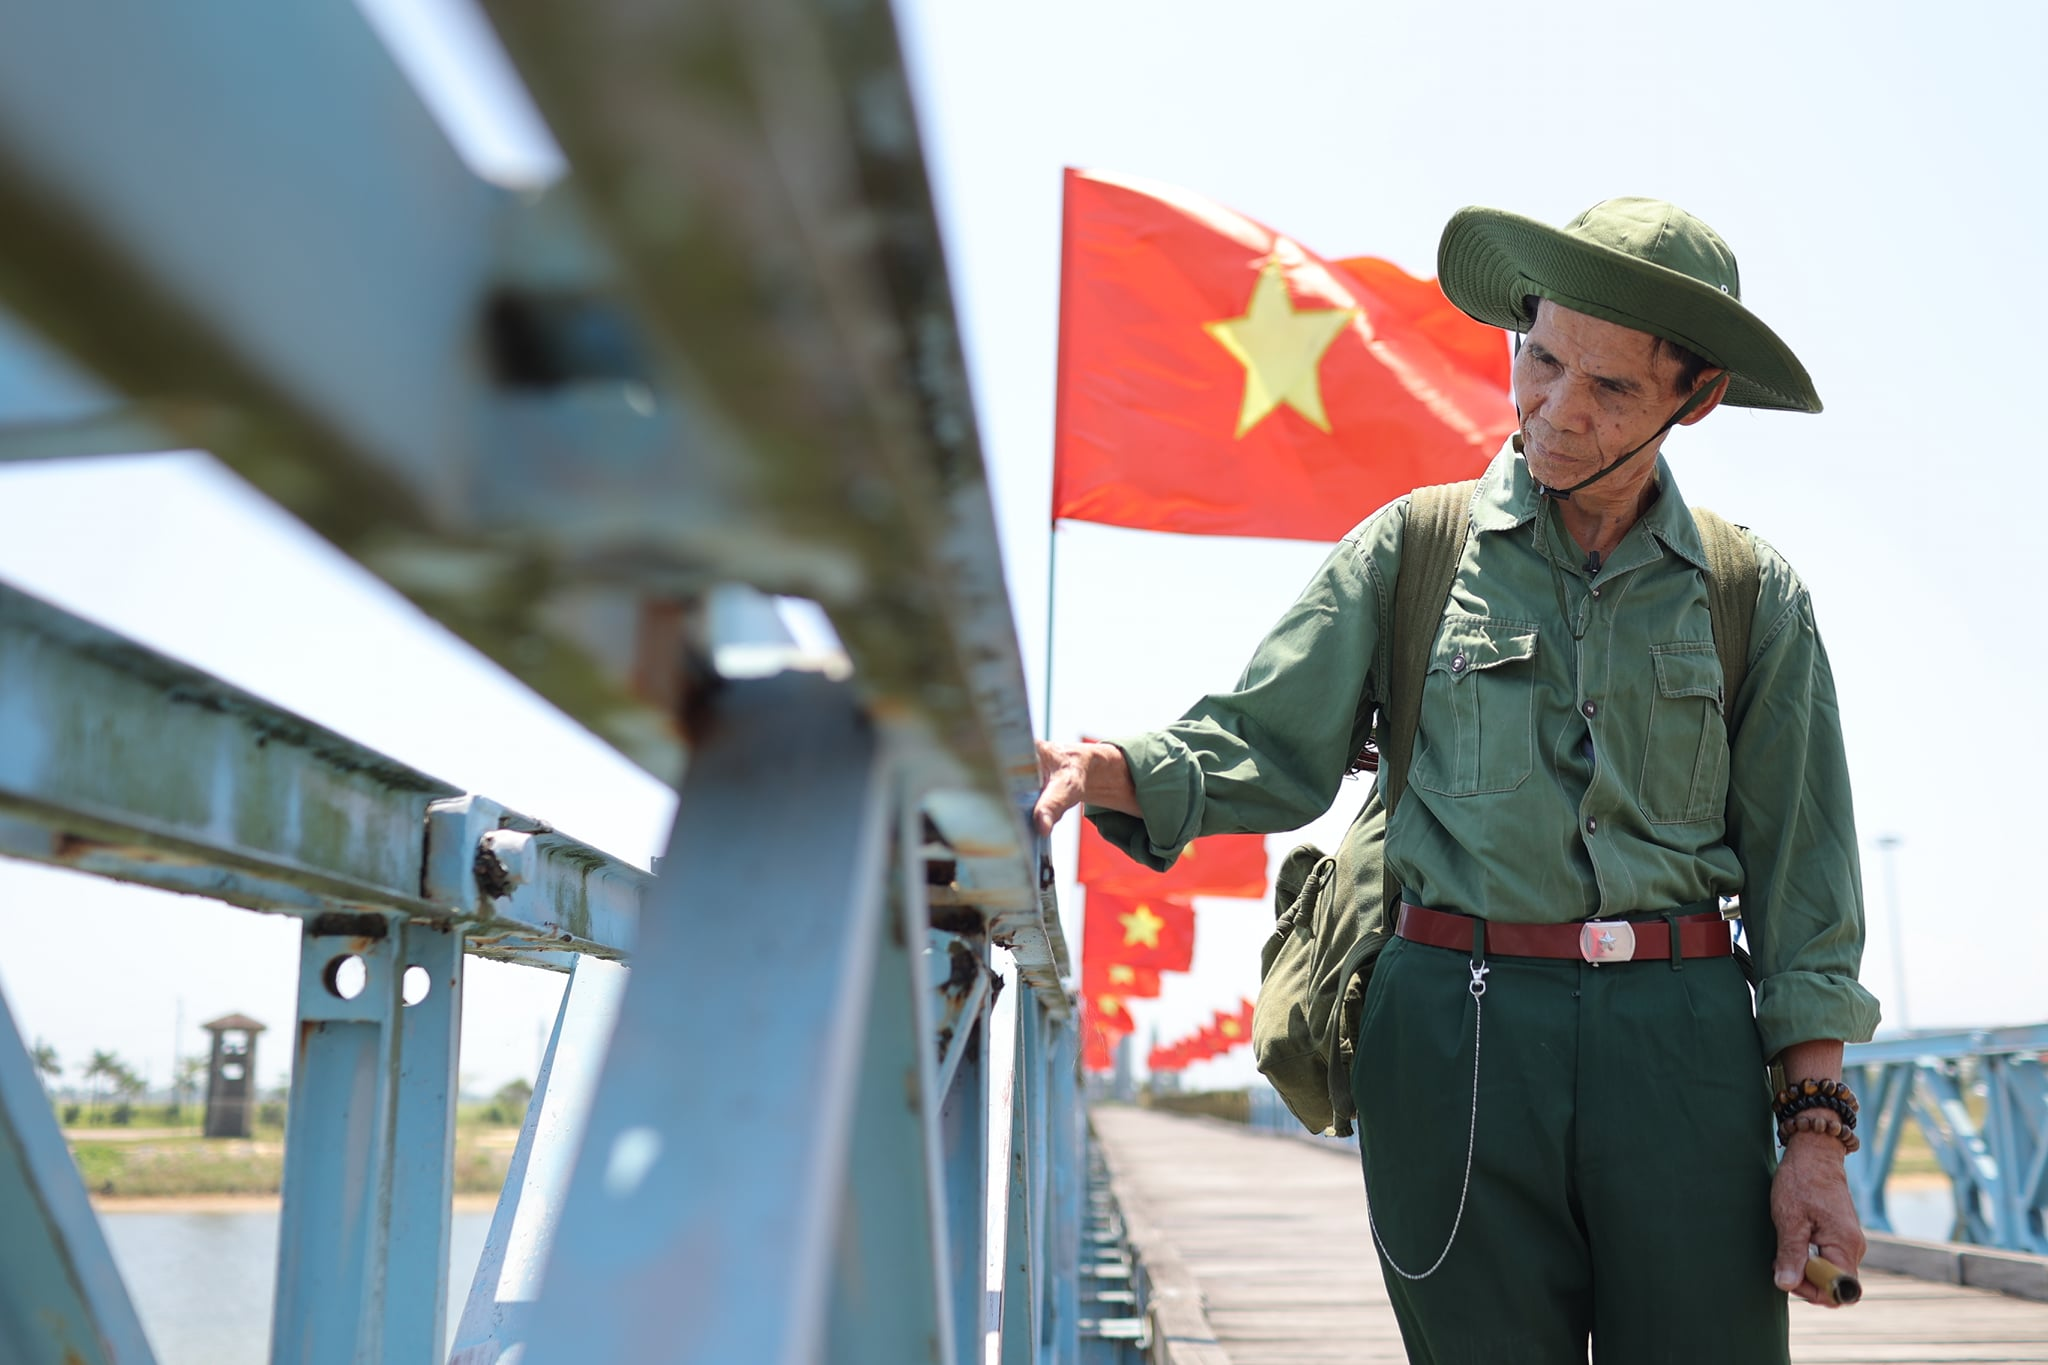 Chu Dinh Hoa is seen while visiting Hien Luong Bridge in the central province of Quang Tri in April 2021. Photo: Hoang Tien Dat